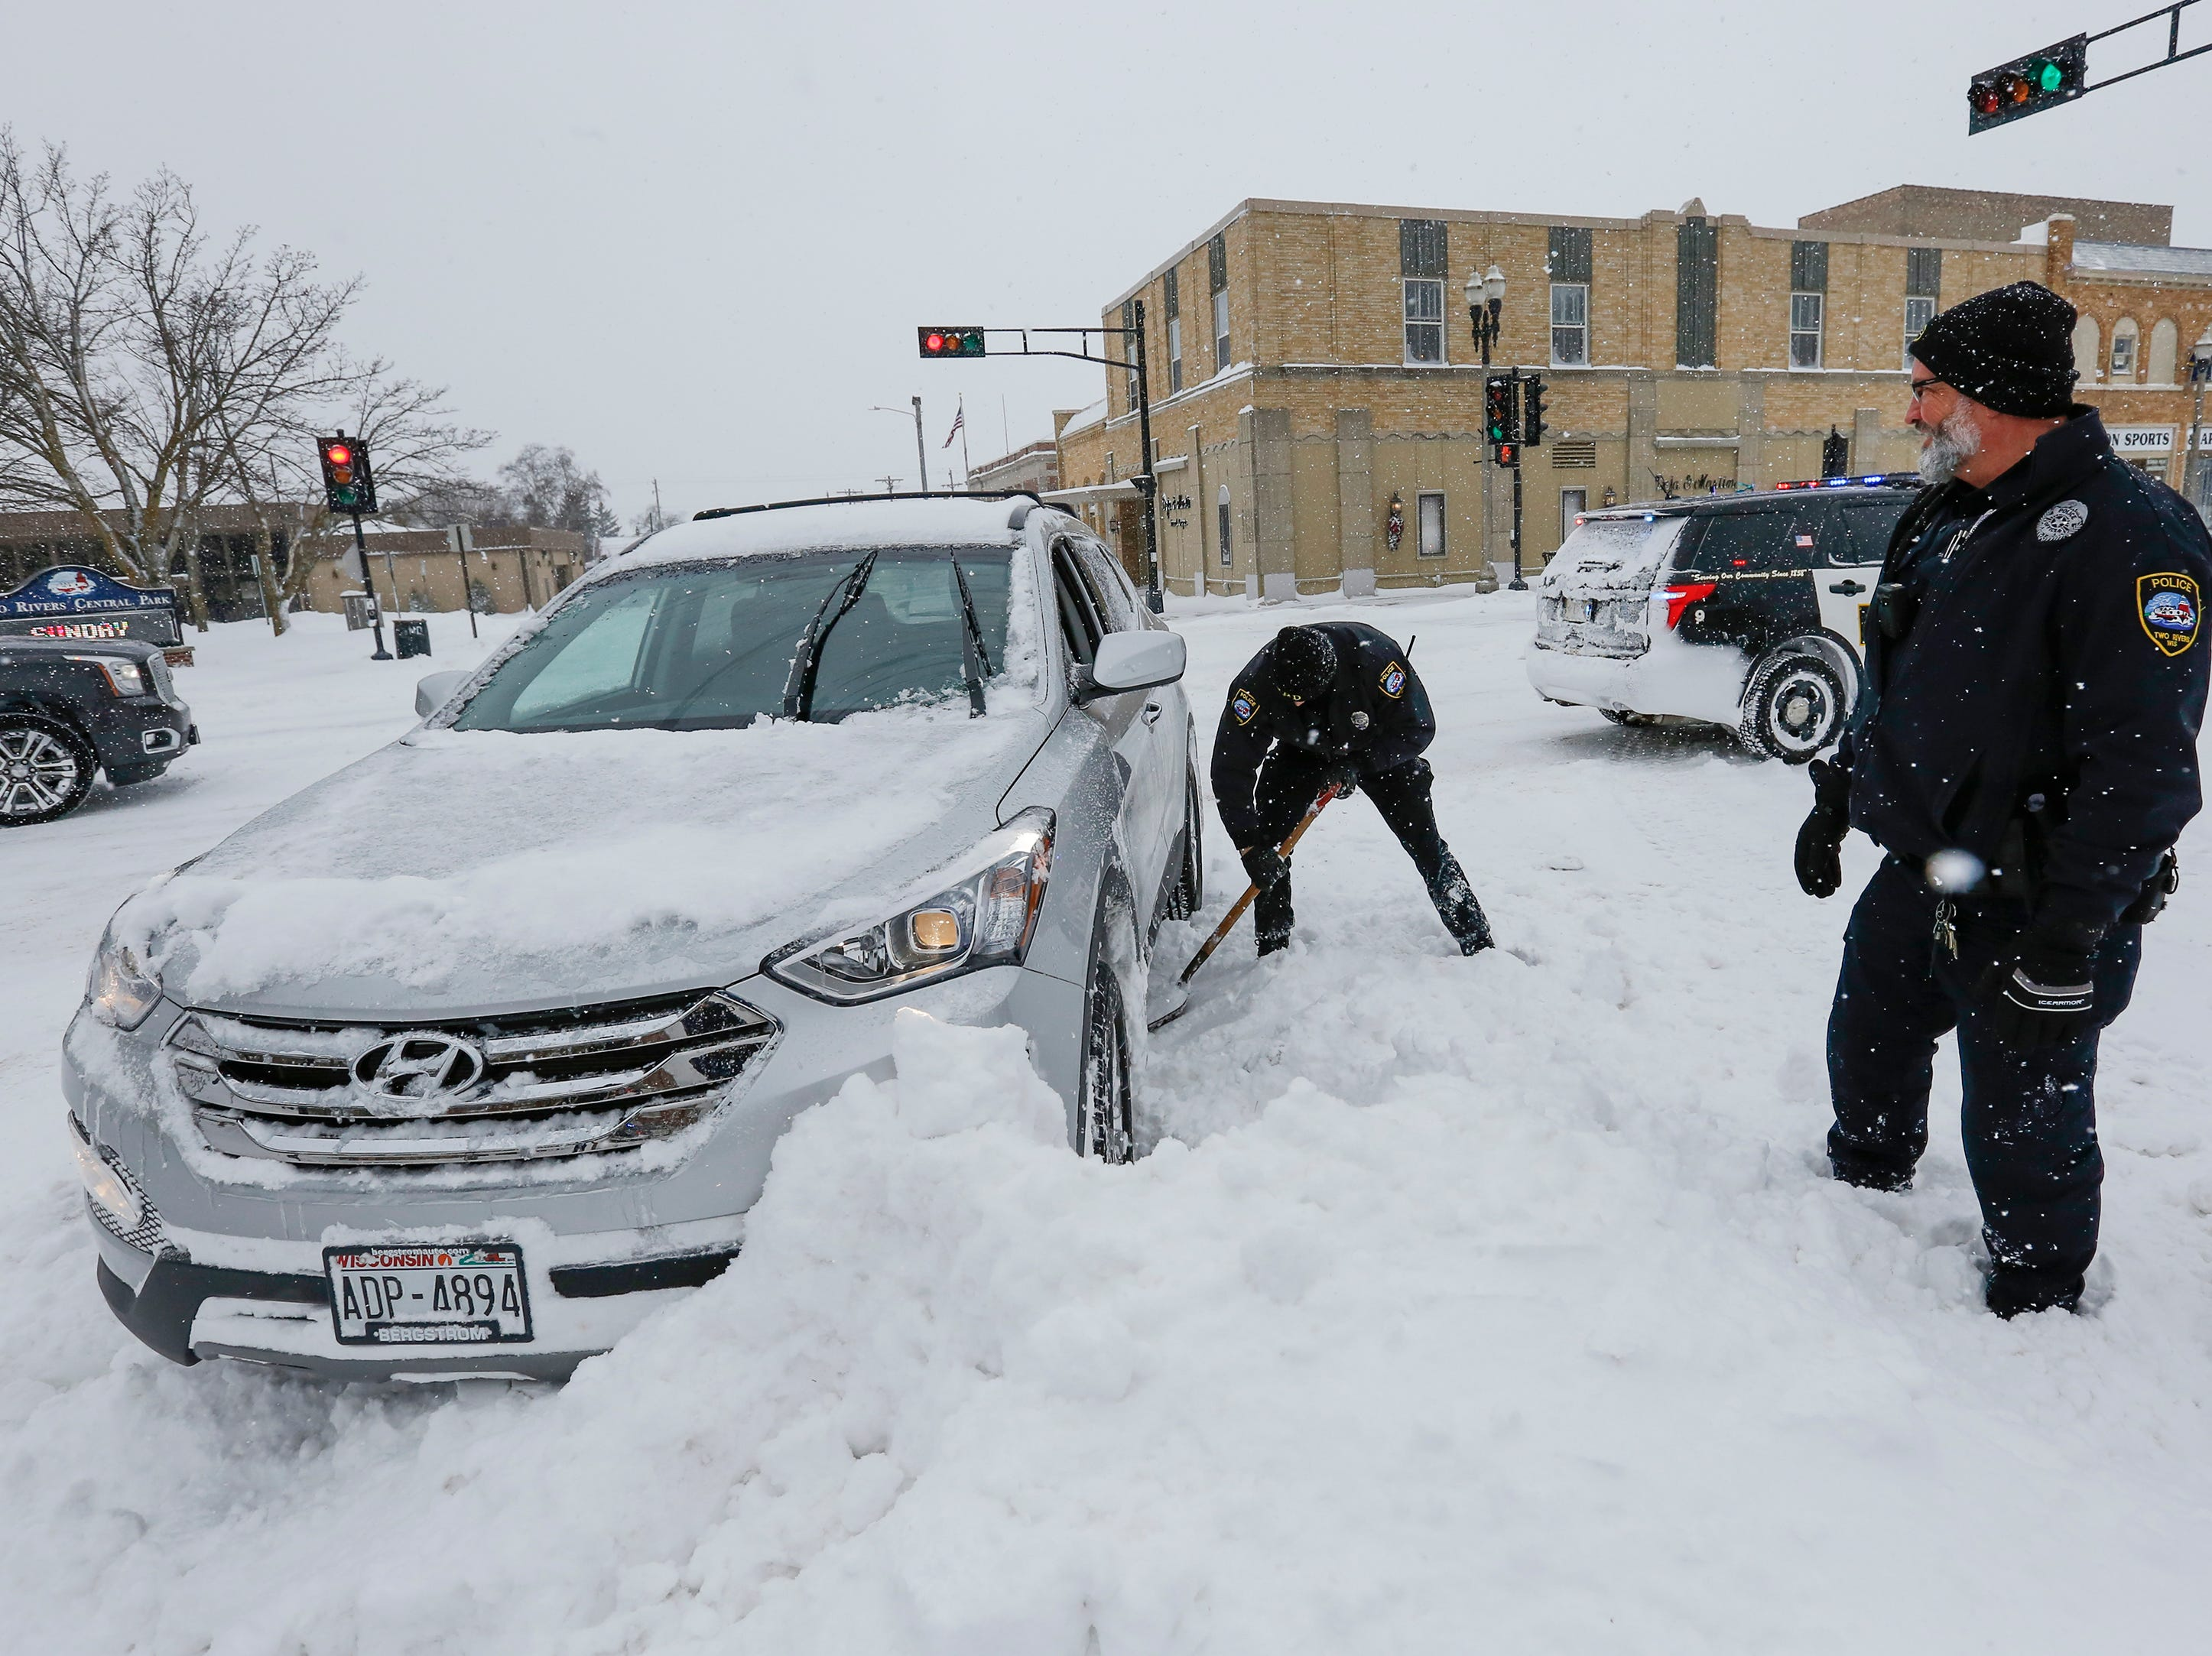 Officers Bobby Strandt, left, and Tim Culligan, of the Two Rivers Police Department, help dig out Kevin Holschbach's car after he got stuck in a snowbank off Main Street on Monday, Jan. 28, 2019, in Two Rivers, Wis.